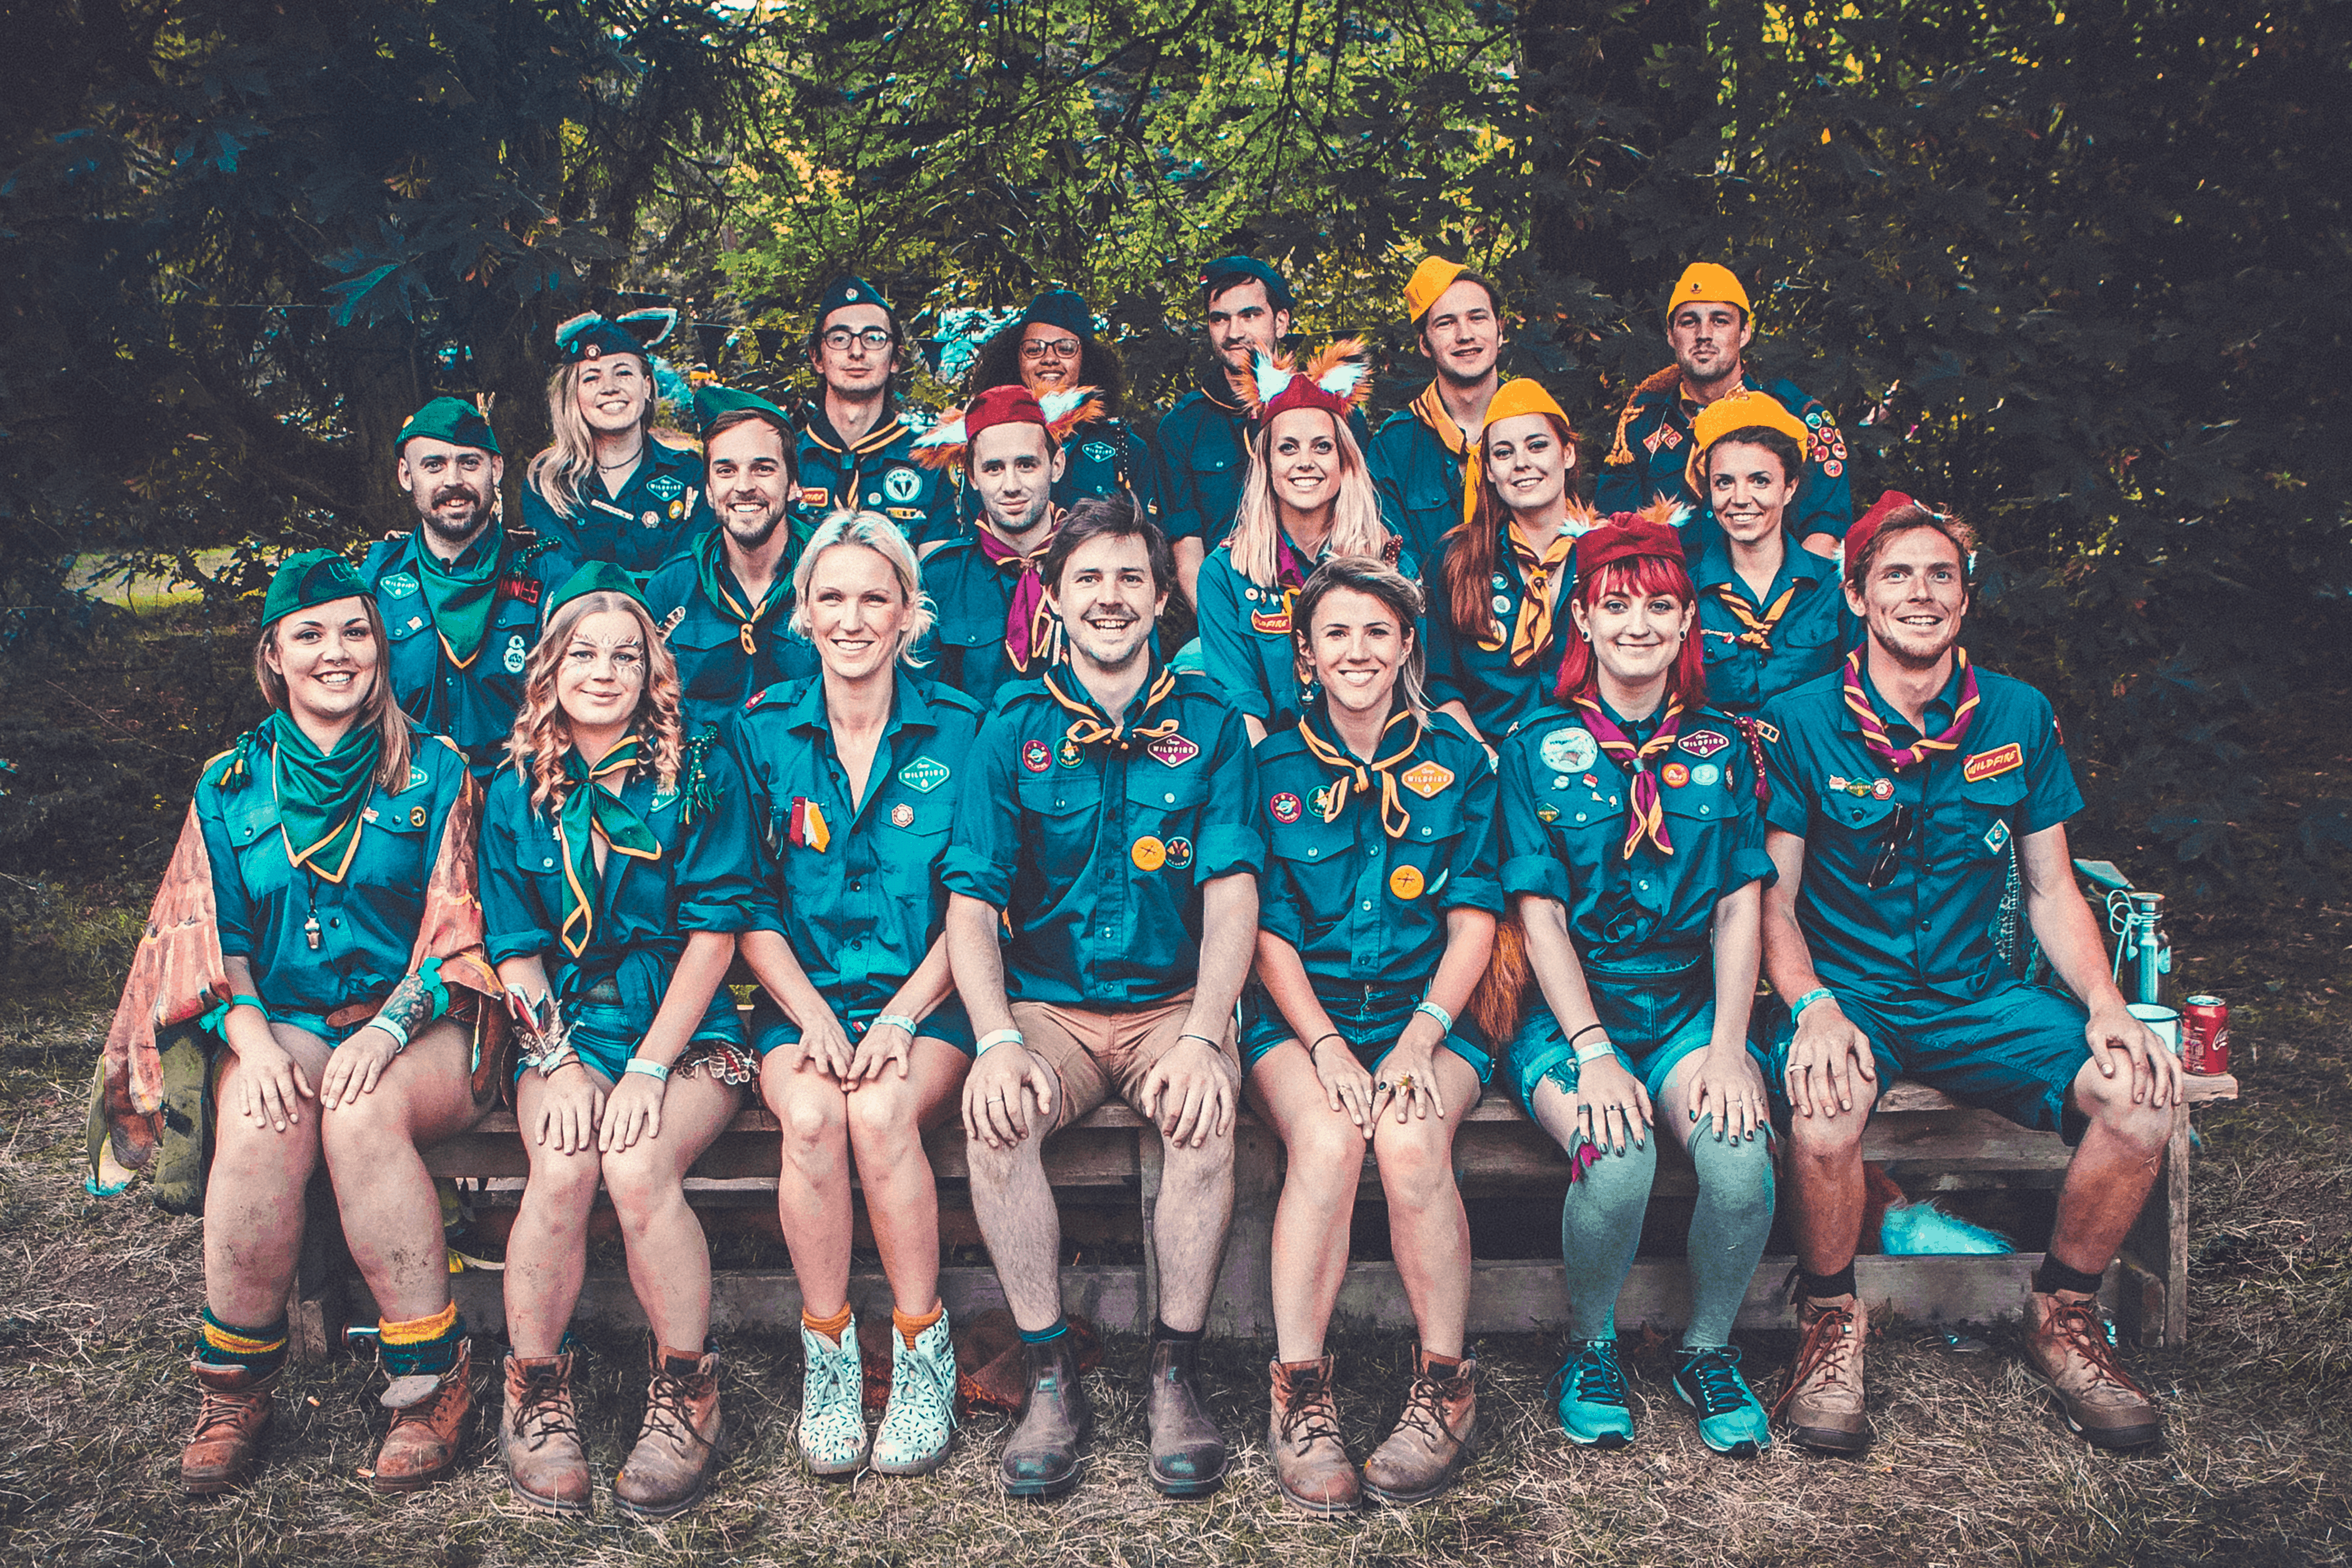 Camp Wildfire patrol leader photo. A summer weekend break in a forest near London and Kent. An outdoor woodland retreat featuring adventure activities, live music, DJs, parties and camping. Half summer adventure activity camp, half music festival, for adults only.